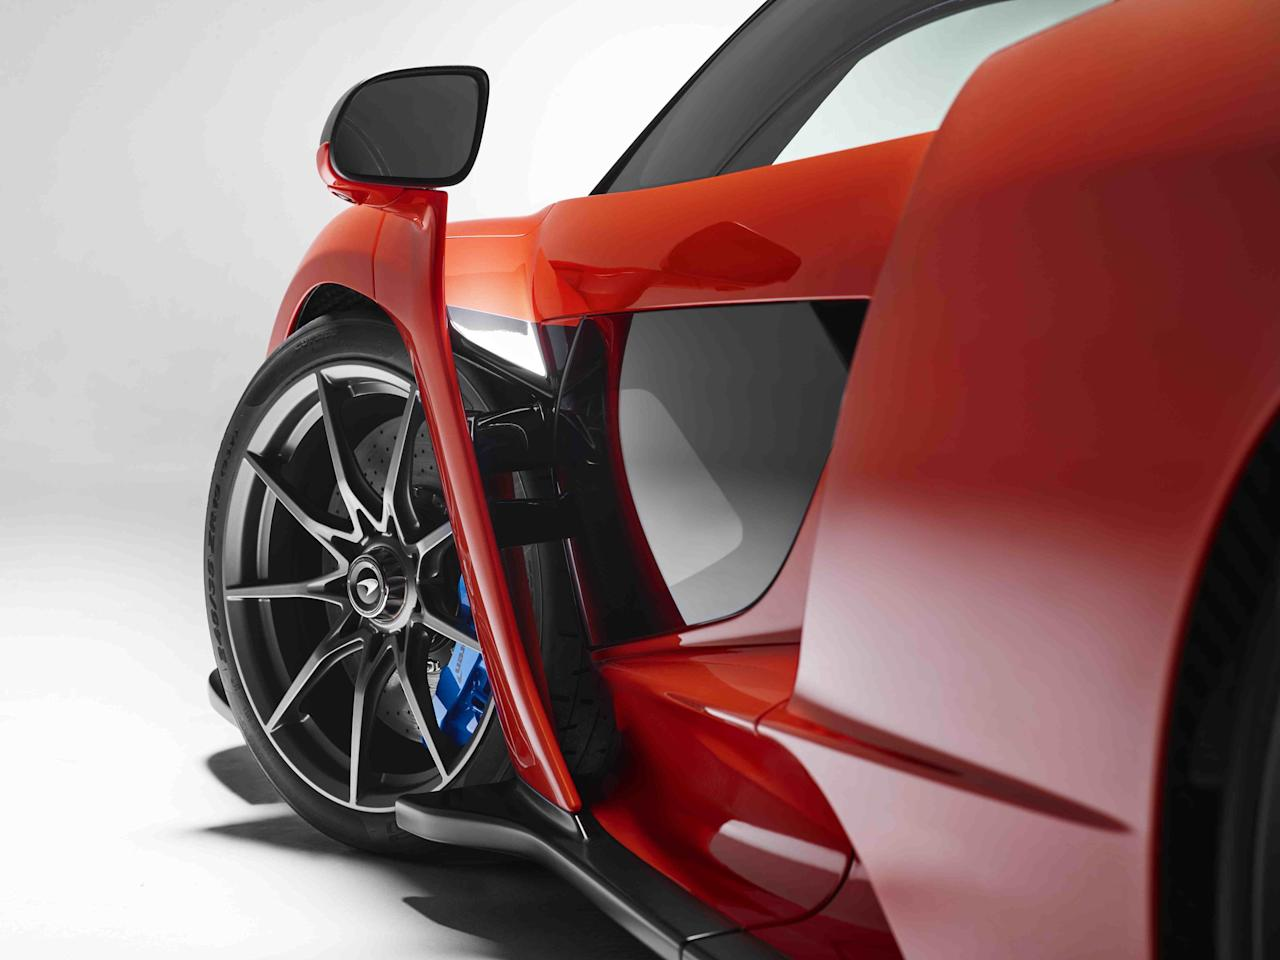 <p>Although no official performance figures have been released as yet, the 4.0-litre, twin-turbo V8 engine will pump out almost 790bhp. Given that this McLaren is the lightest yet, it should be propelled to well over 200mph. </p>